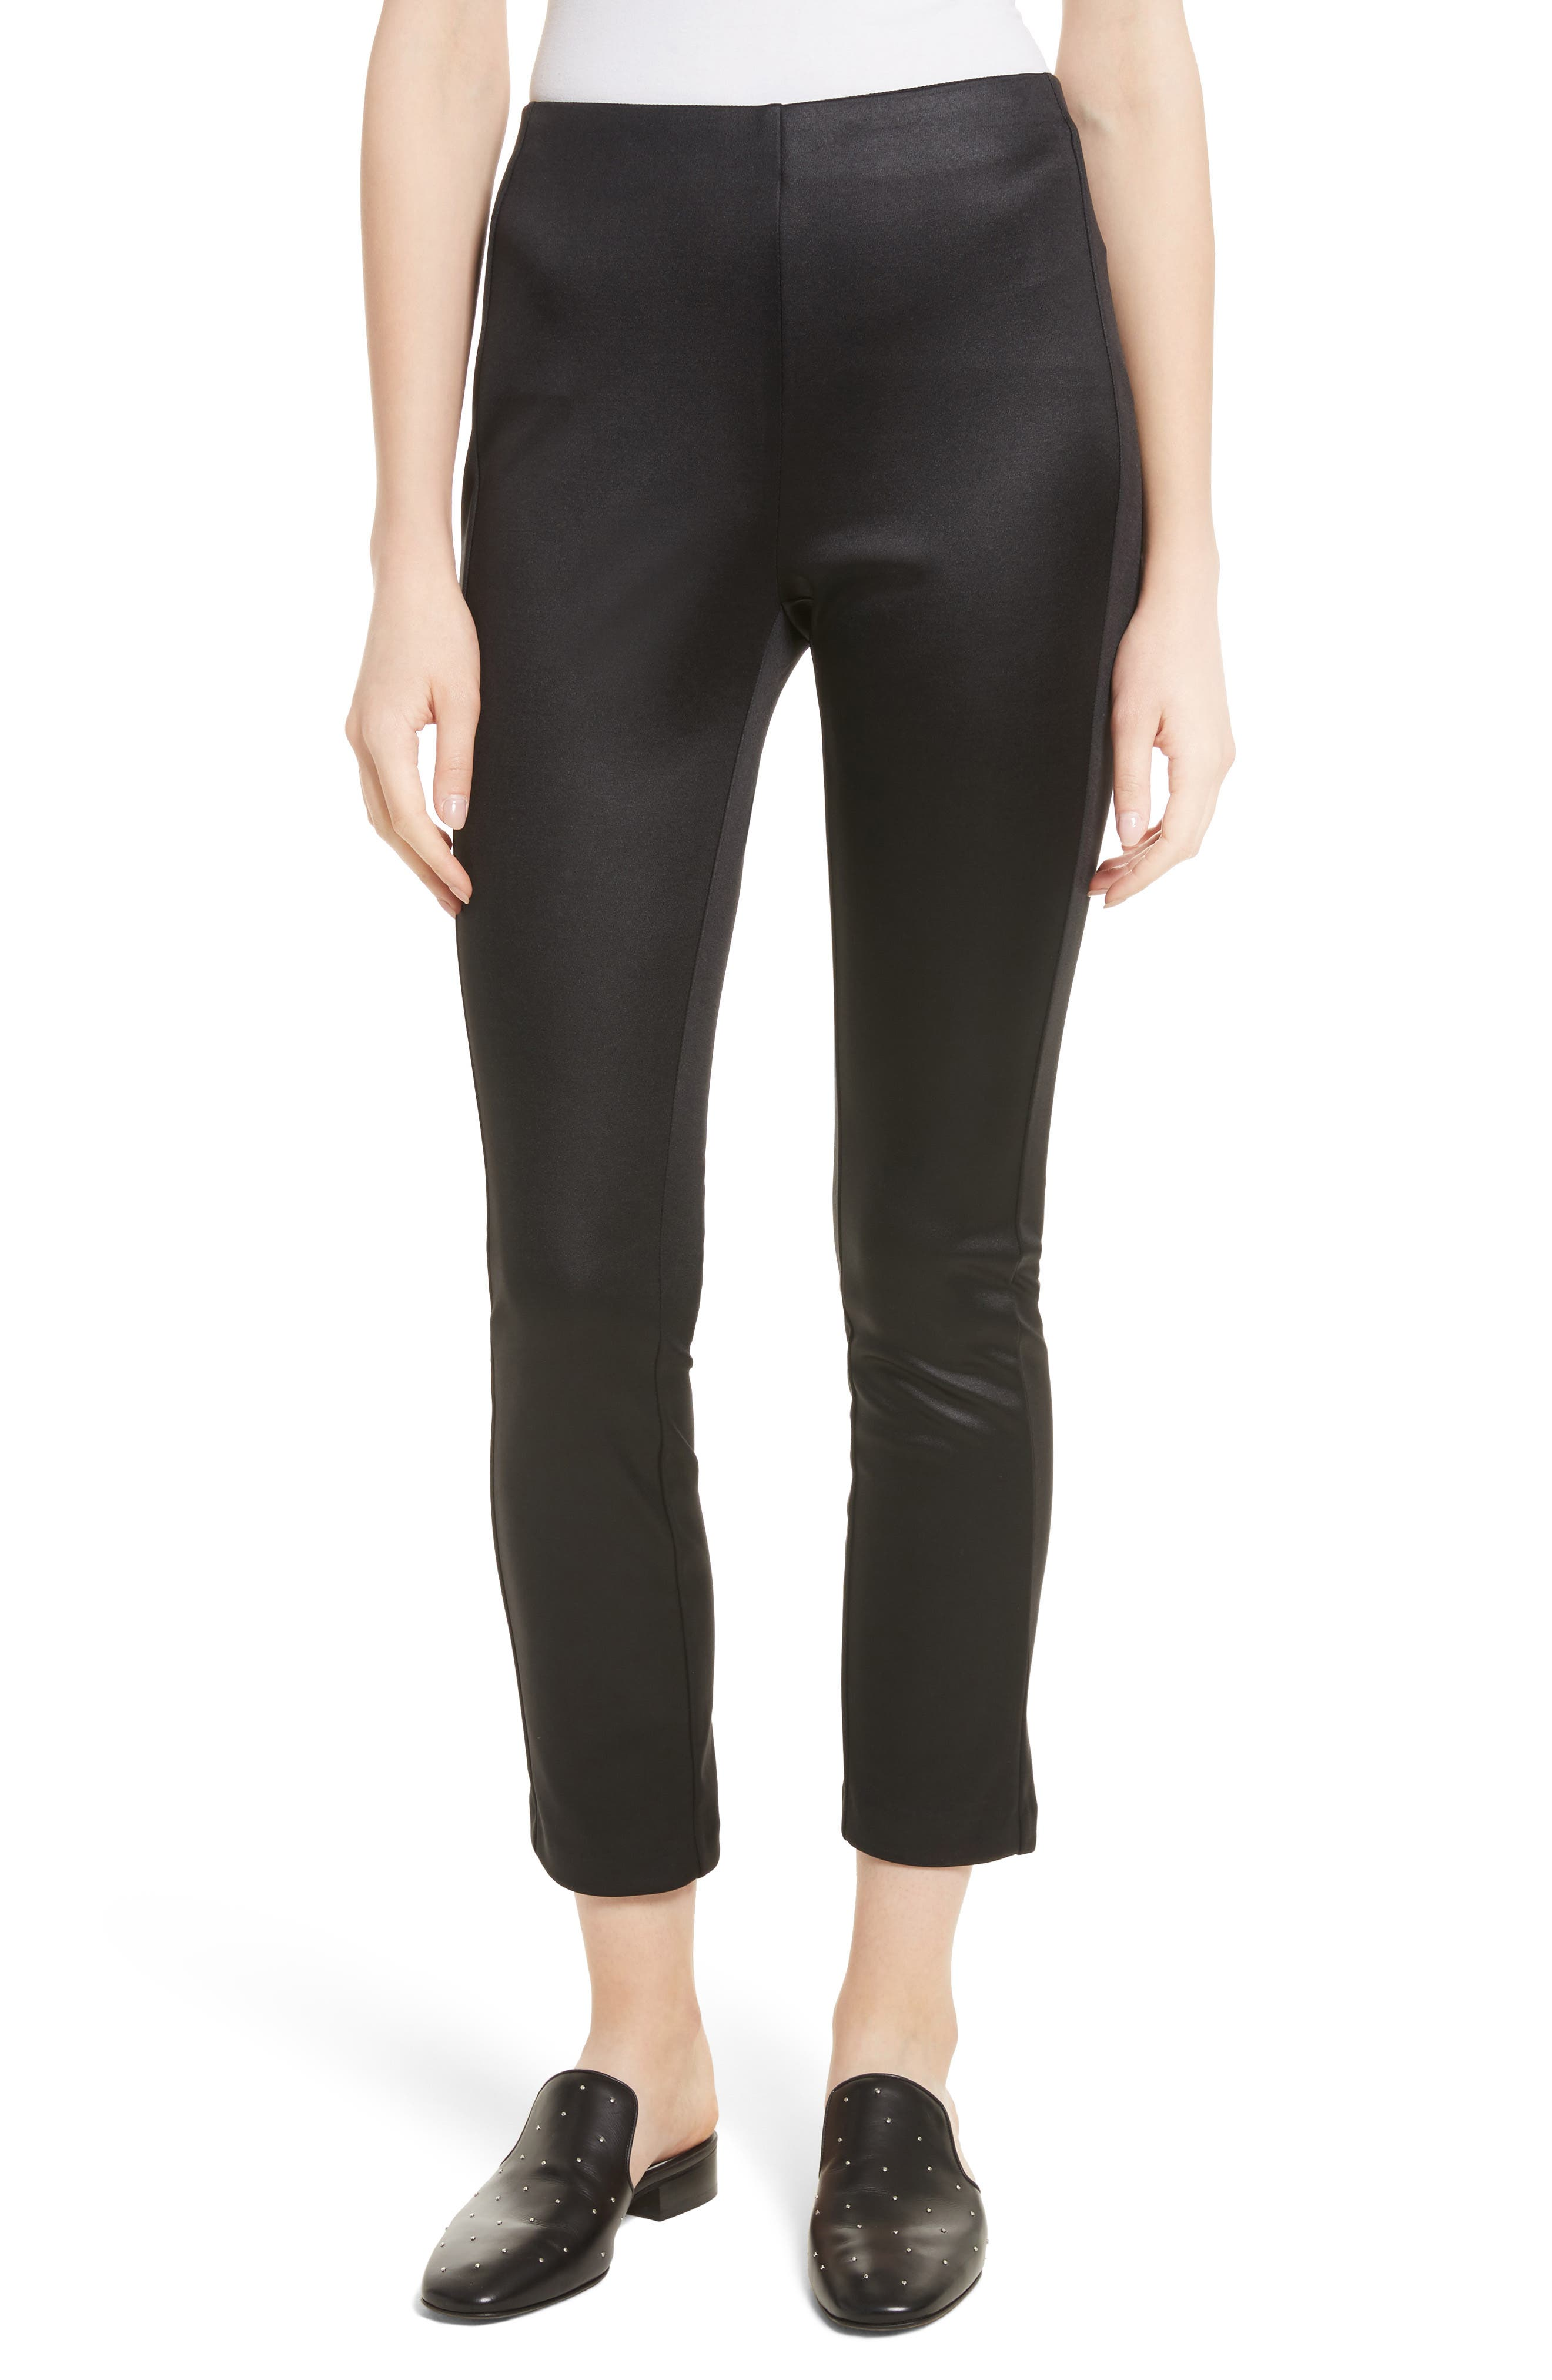 Simone Sateen Pants,                         Main,                         color, Black